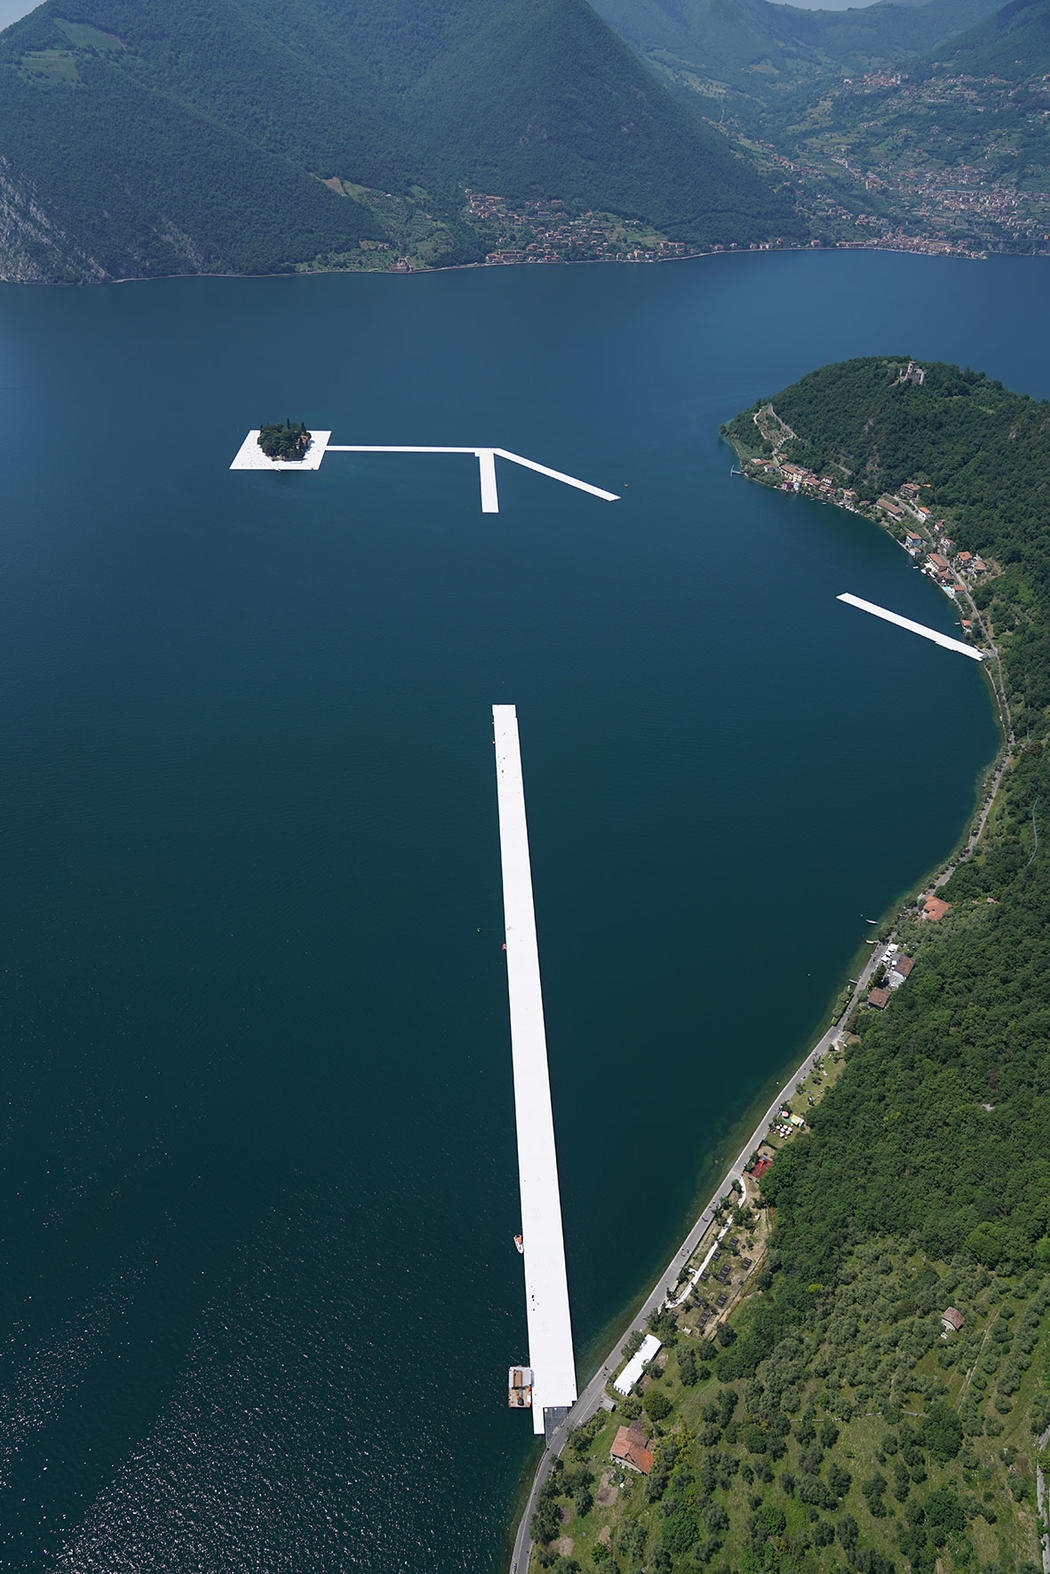 12-Christo-and-Jeanne-Claude-The-Floating-Piers-Walkways-on-Lake-Iseo-Italy-www-designstack-co